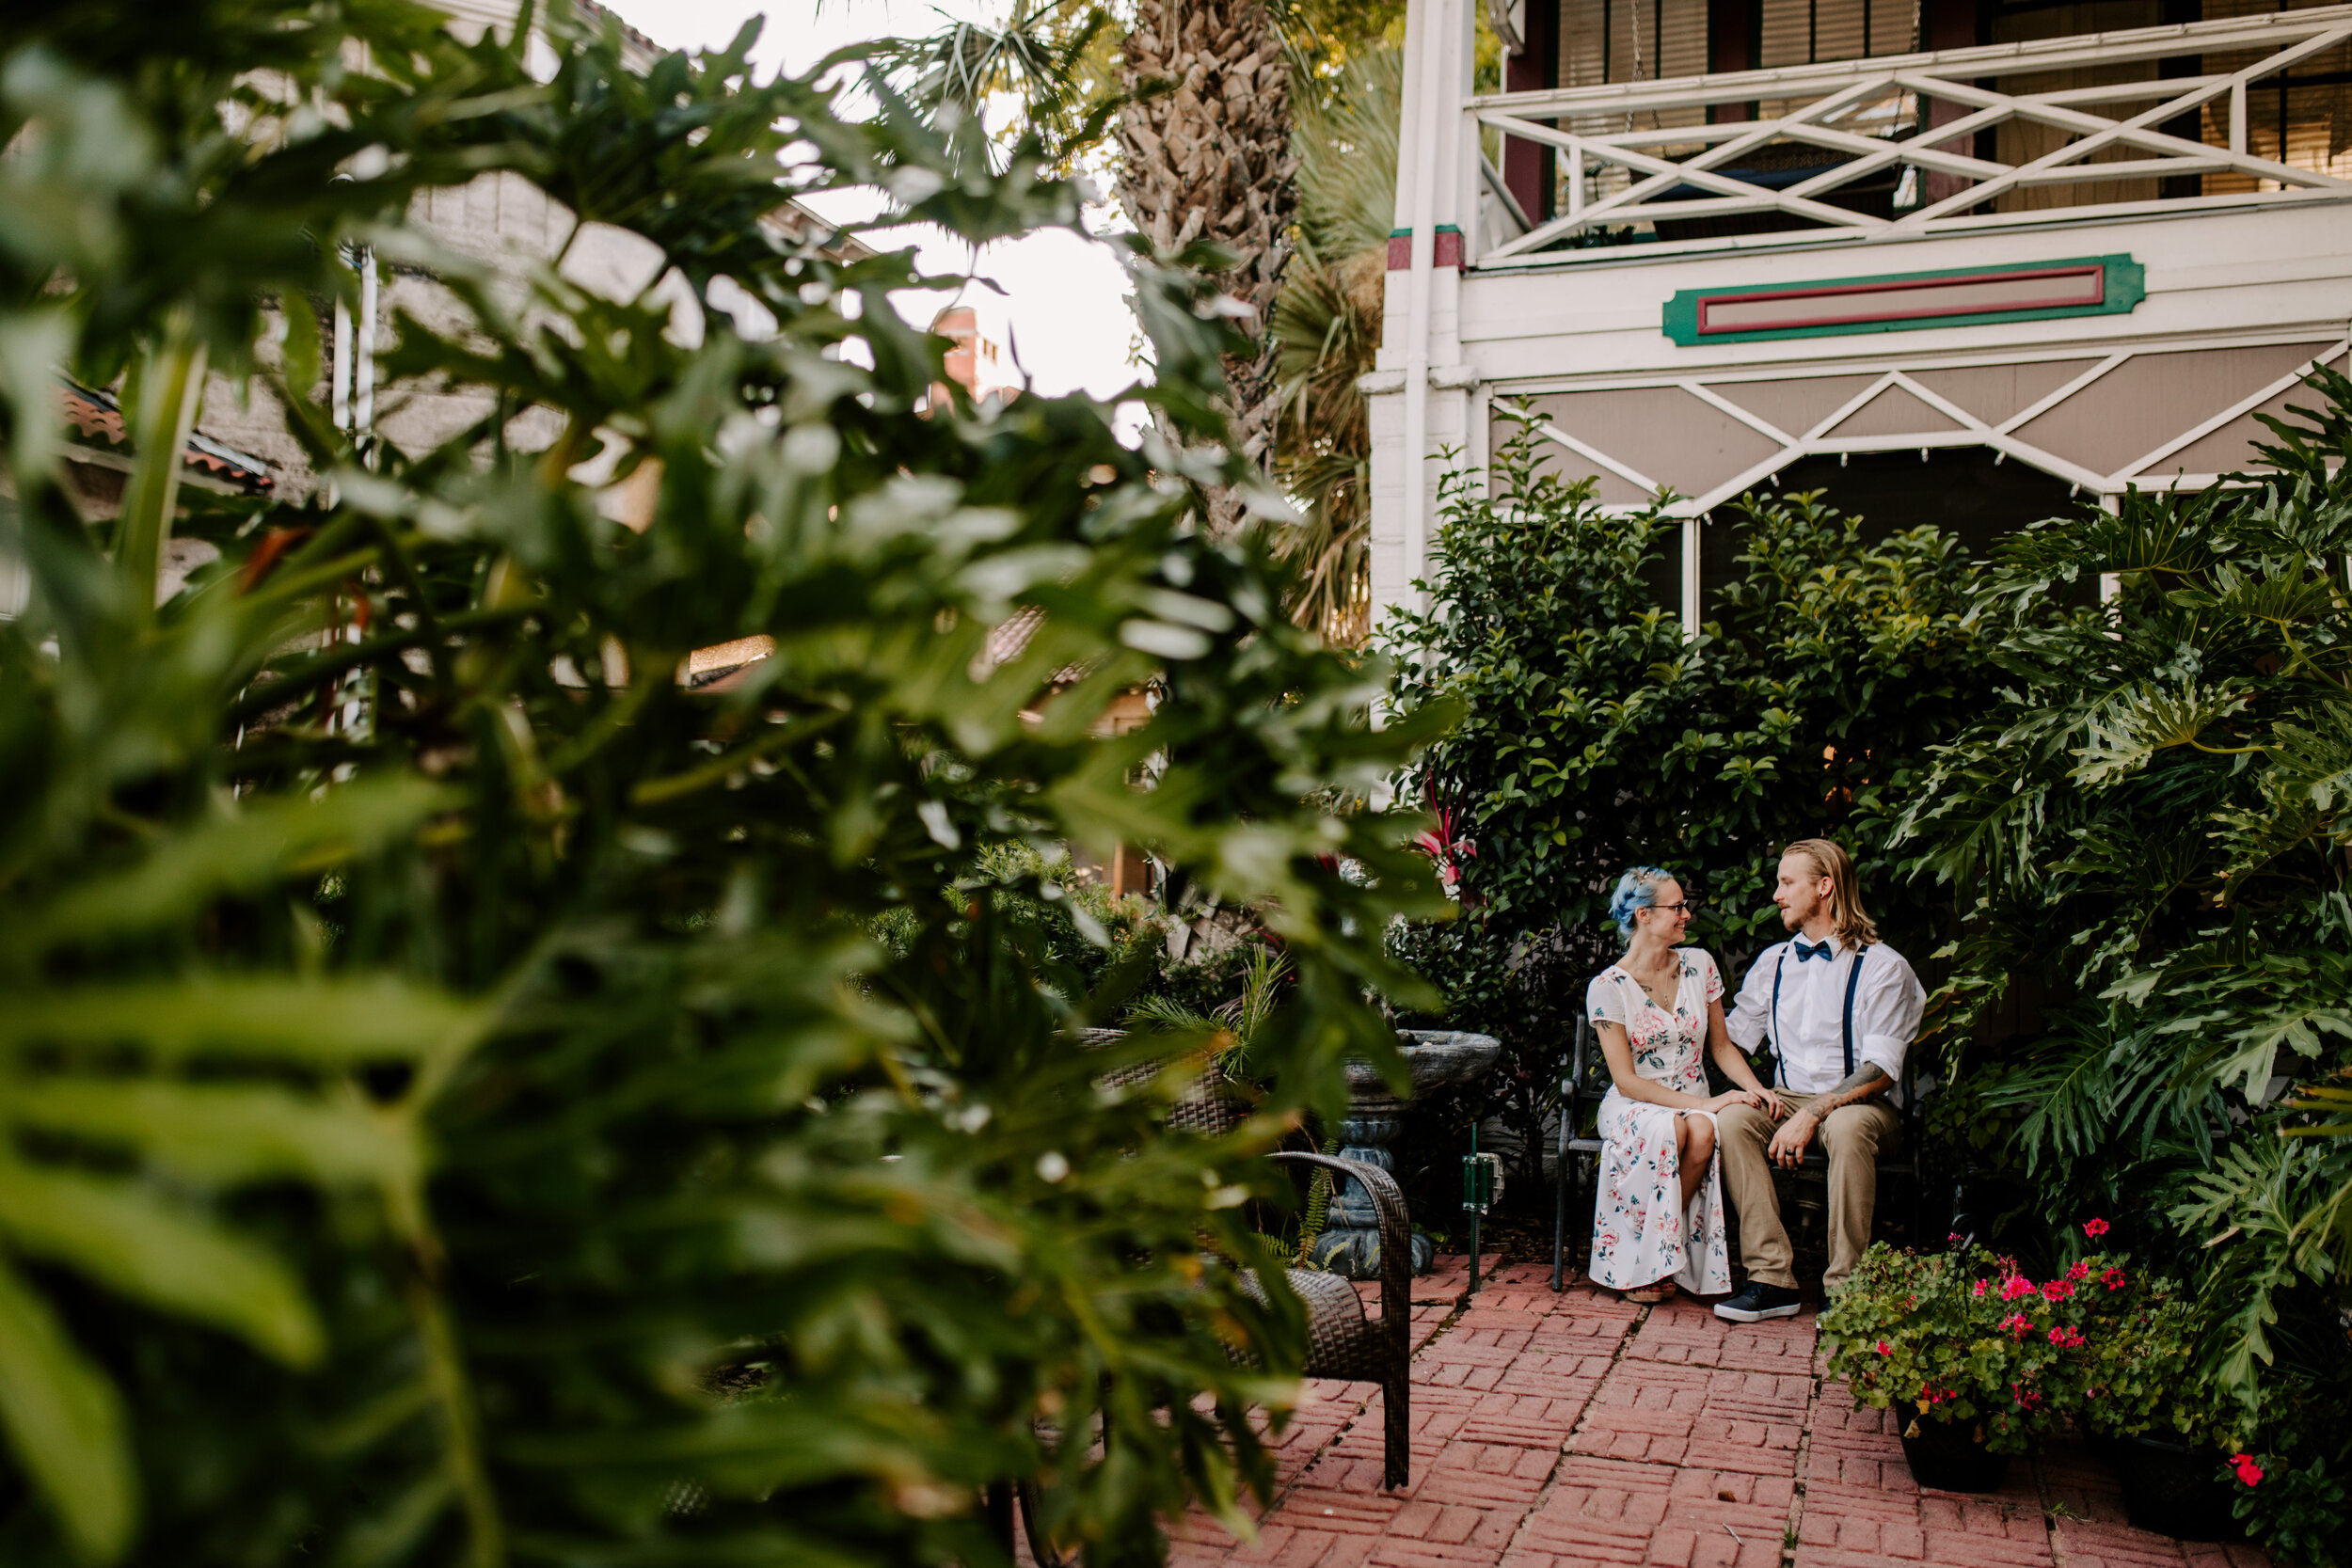 Ashalei_+_Clay_-_Native_Expressions_-_Downtown_St_Augustine_-_Engagement_Session-96.jpg